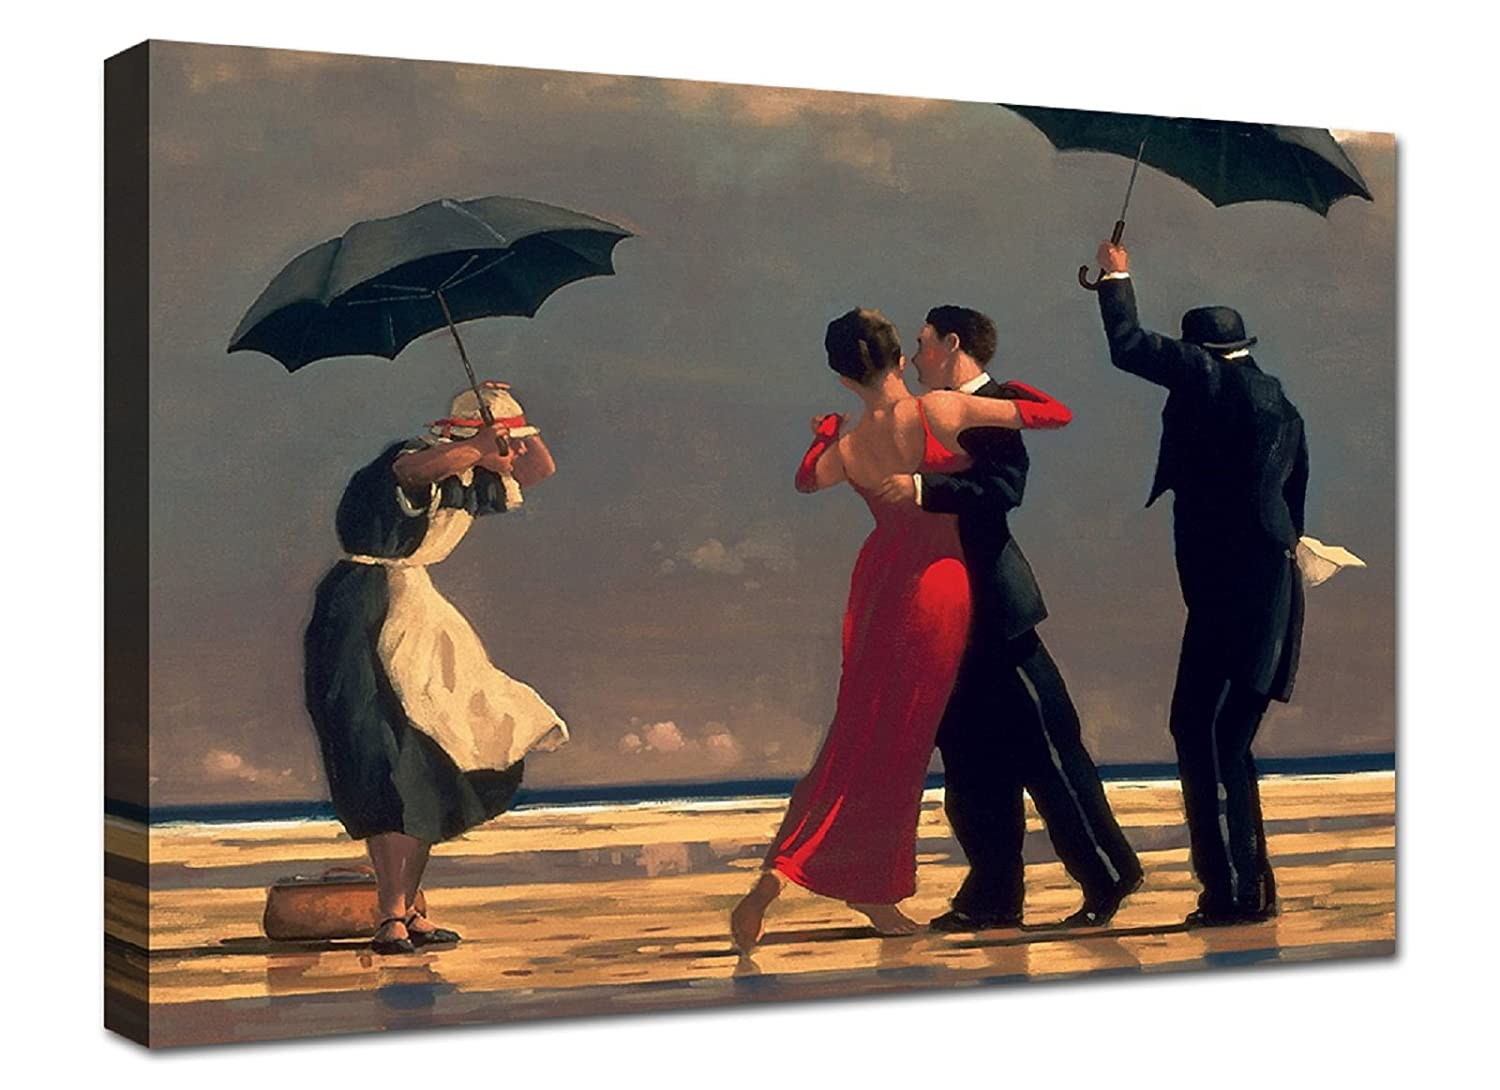 Quadri moderni Stampa su tela canvas in cotone Jack vettriano singing butler cm 100x70 canvashop